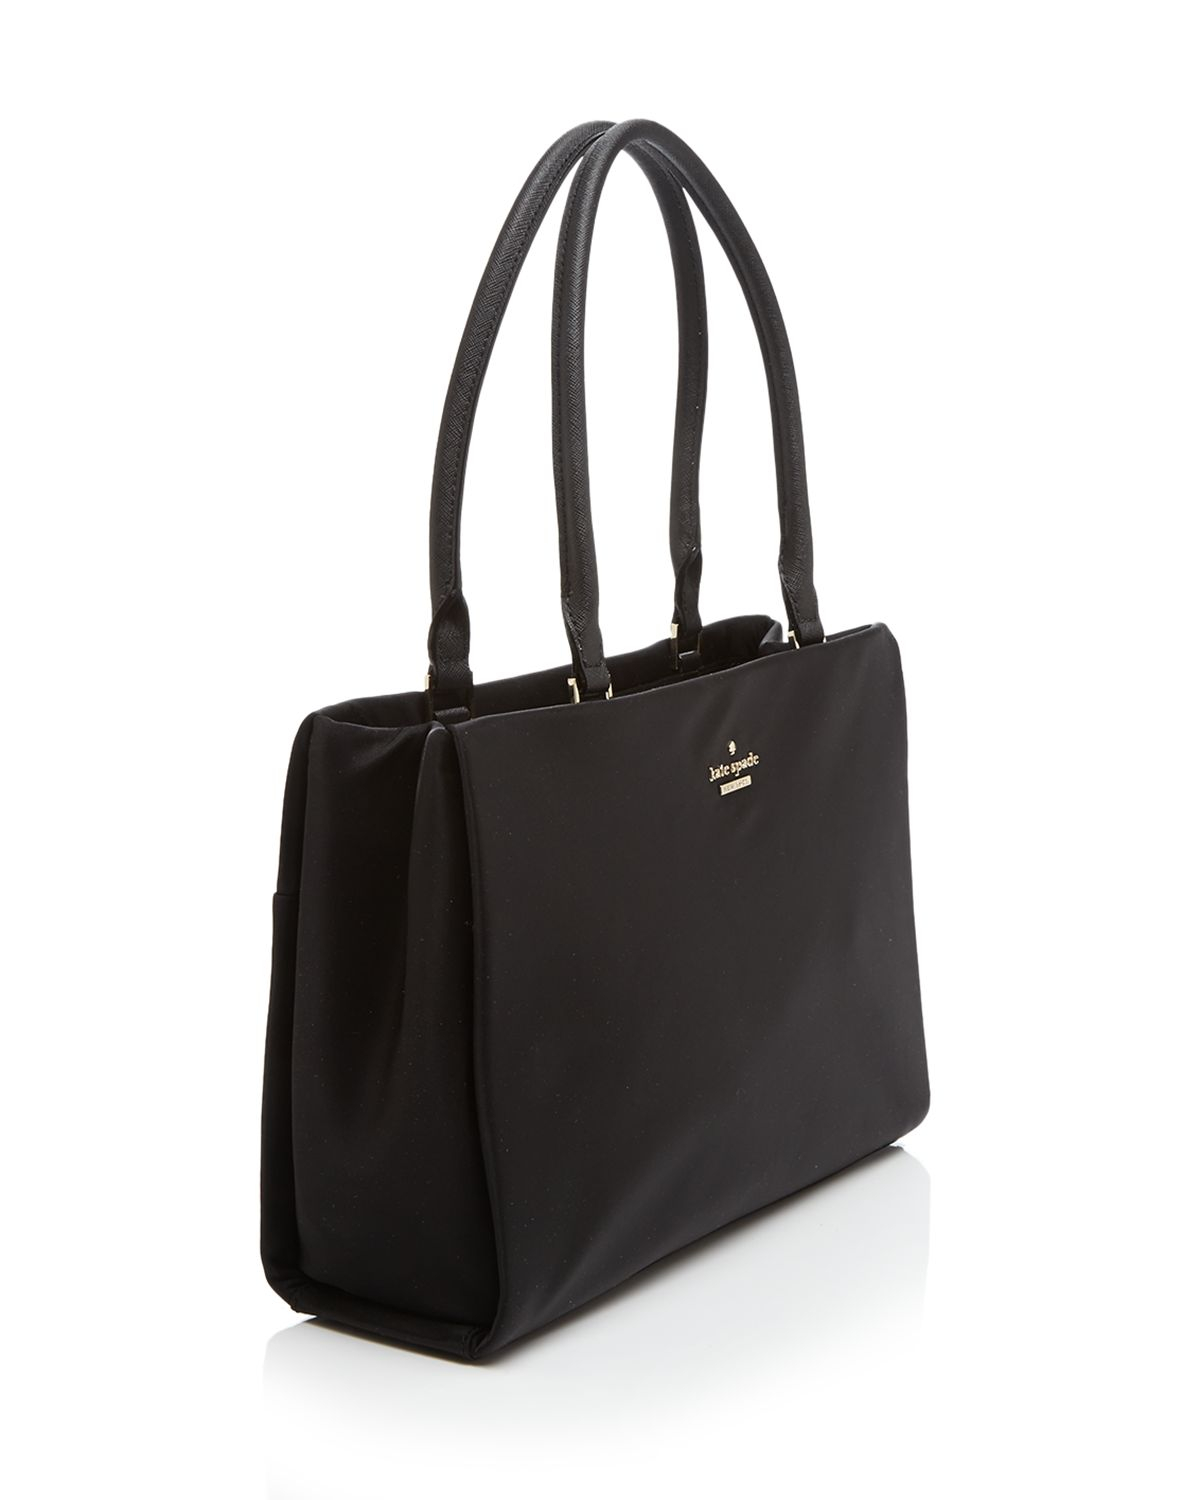 Kate spade new york Tote - Classic Nylon Small Phoebe in Black | Lyst